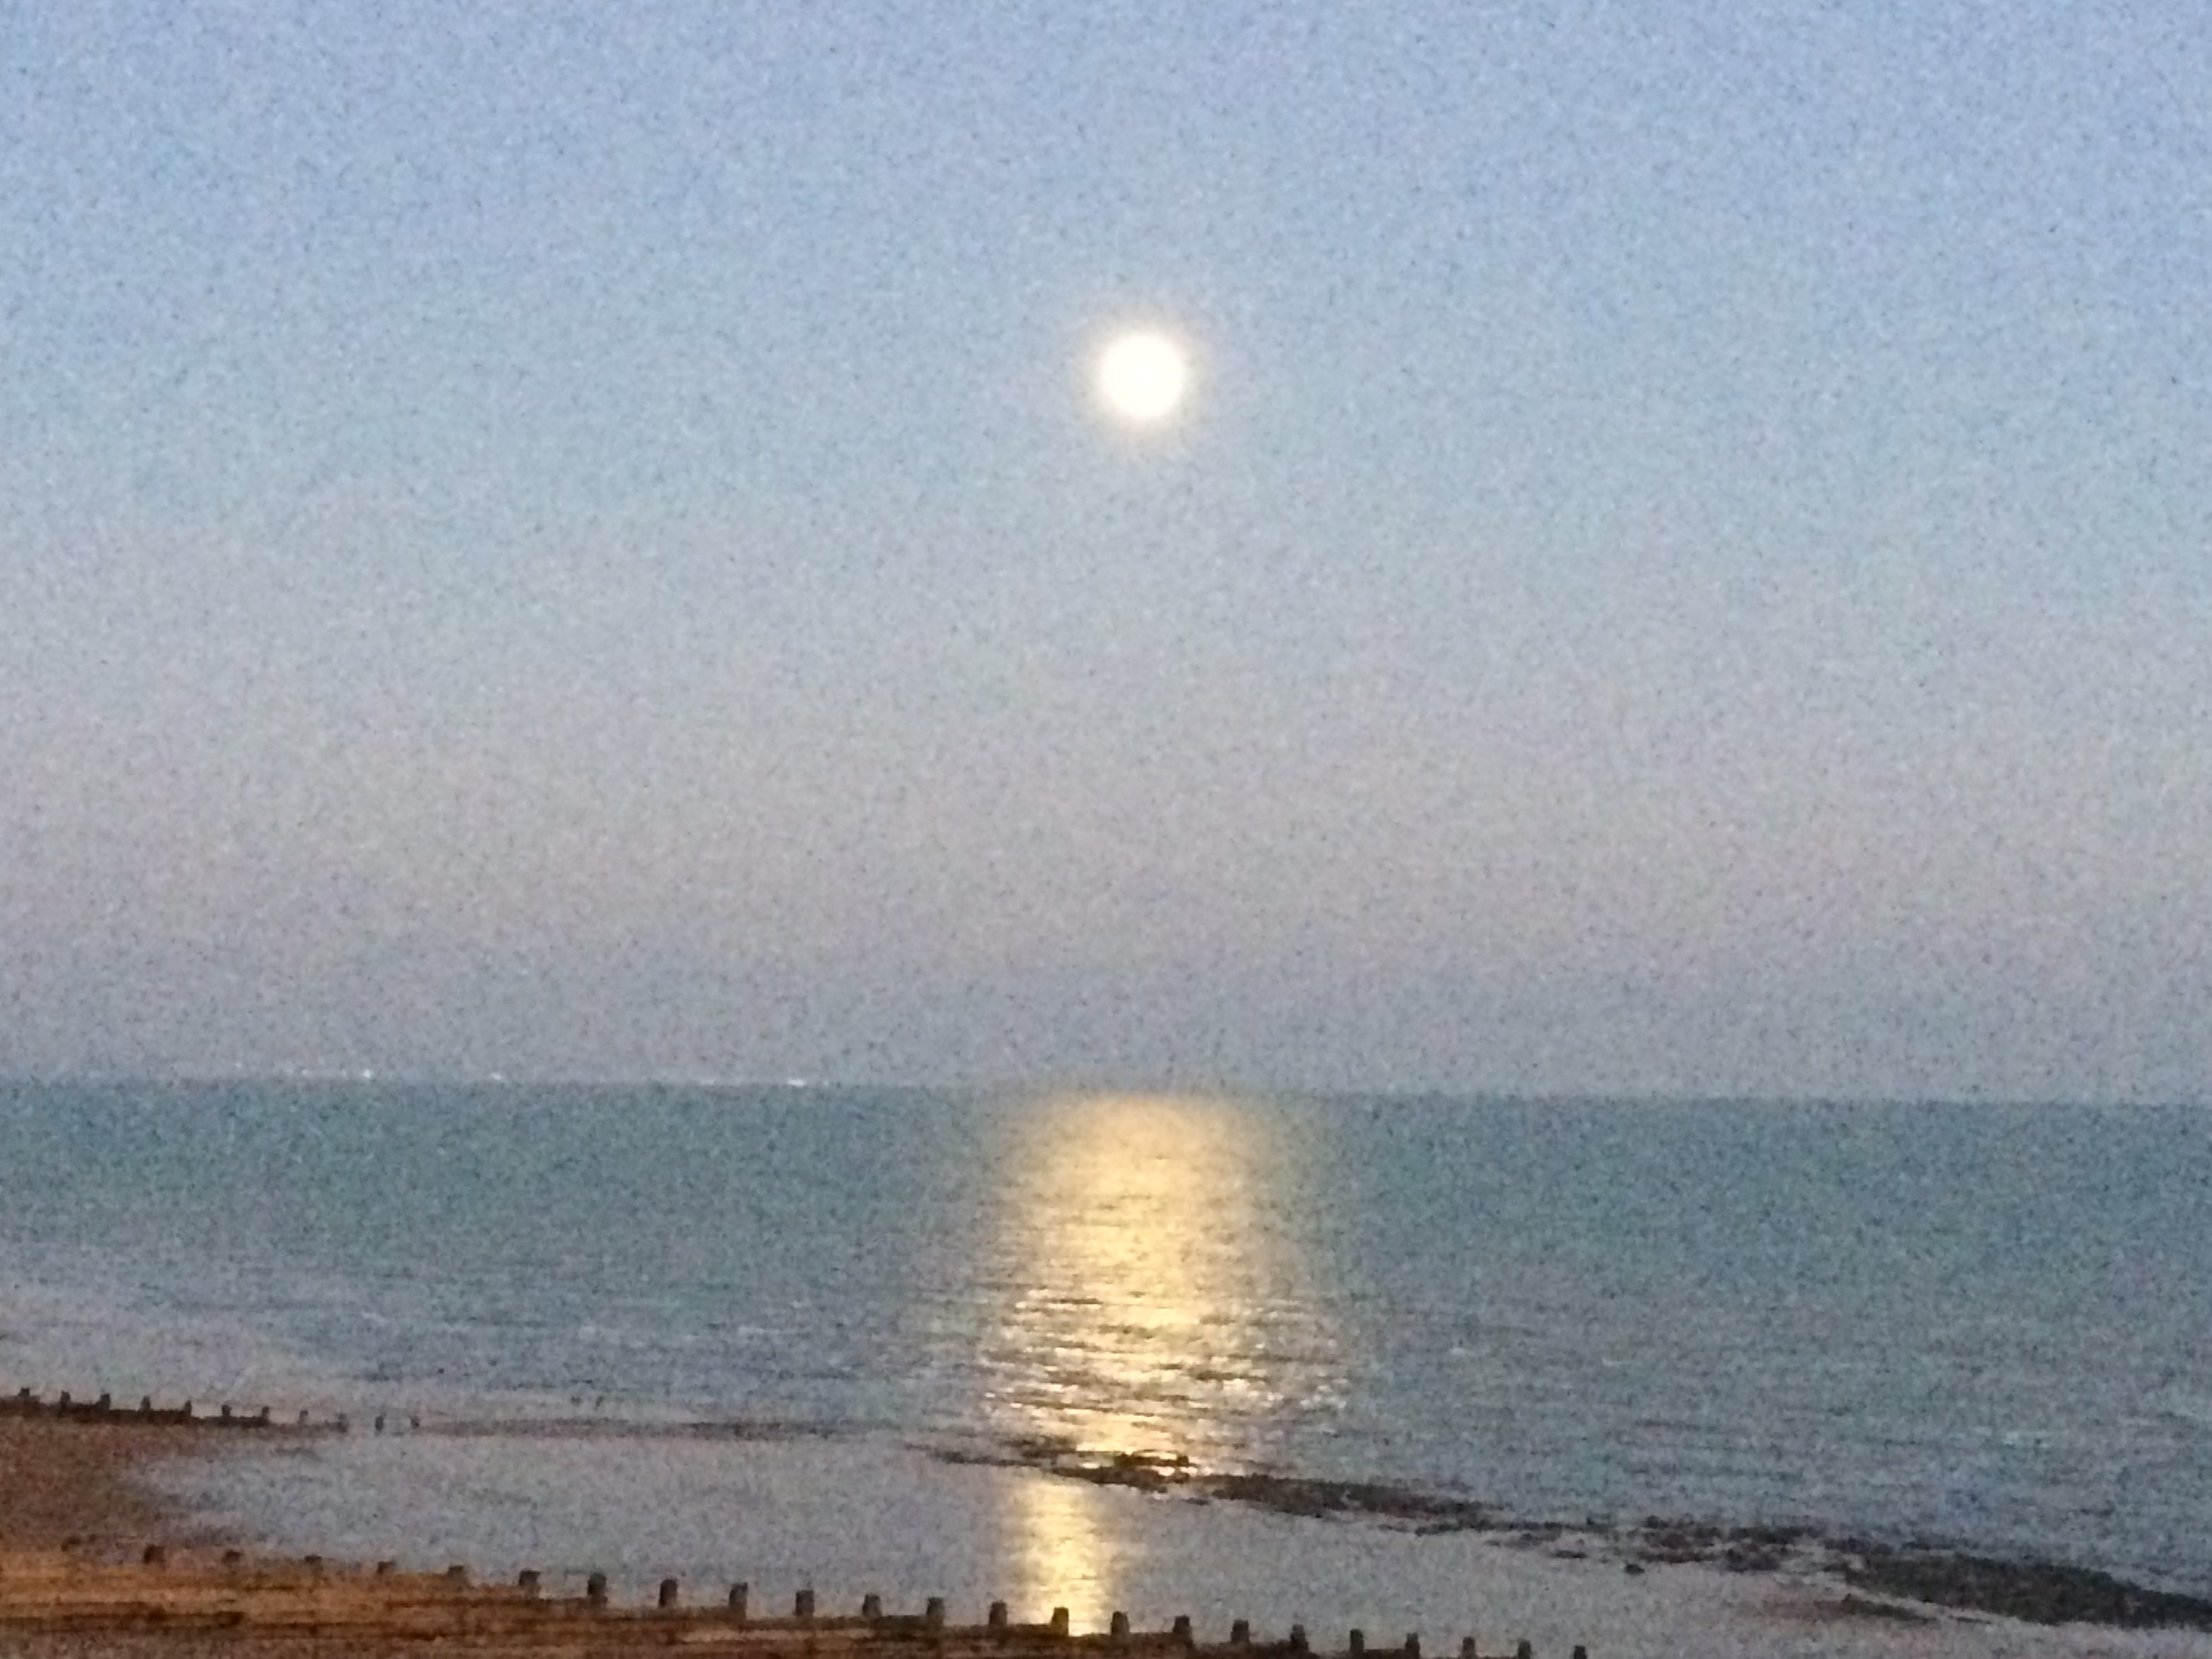 Full moon rising in the southeastern sky over the sea at Eastbourne